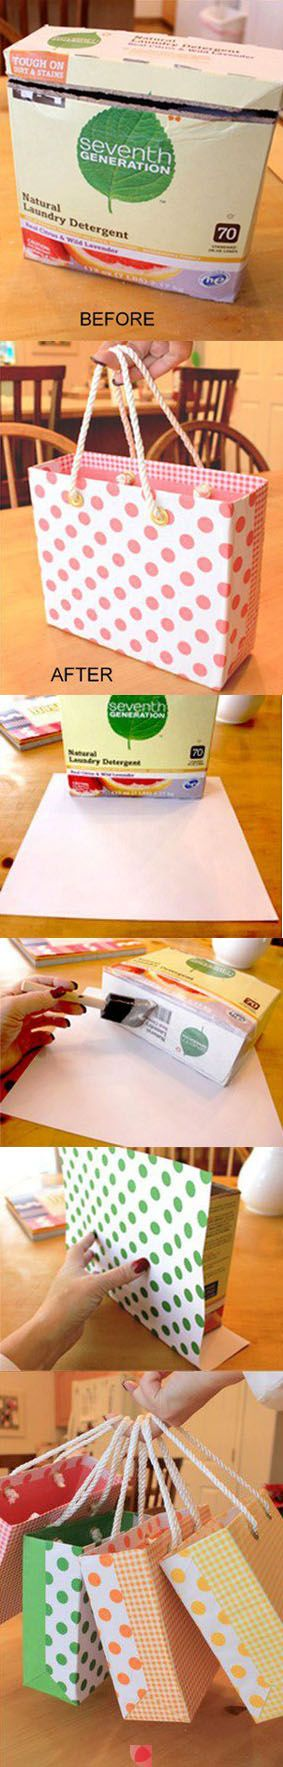 Make your own gift bags. You can use Mod Podge to apply papers and